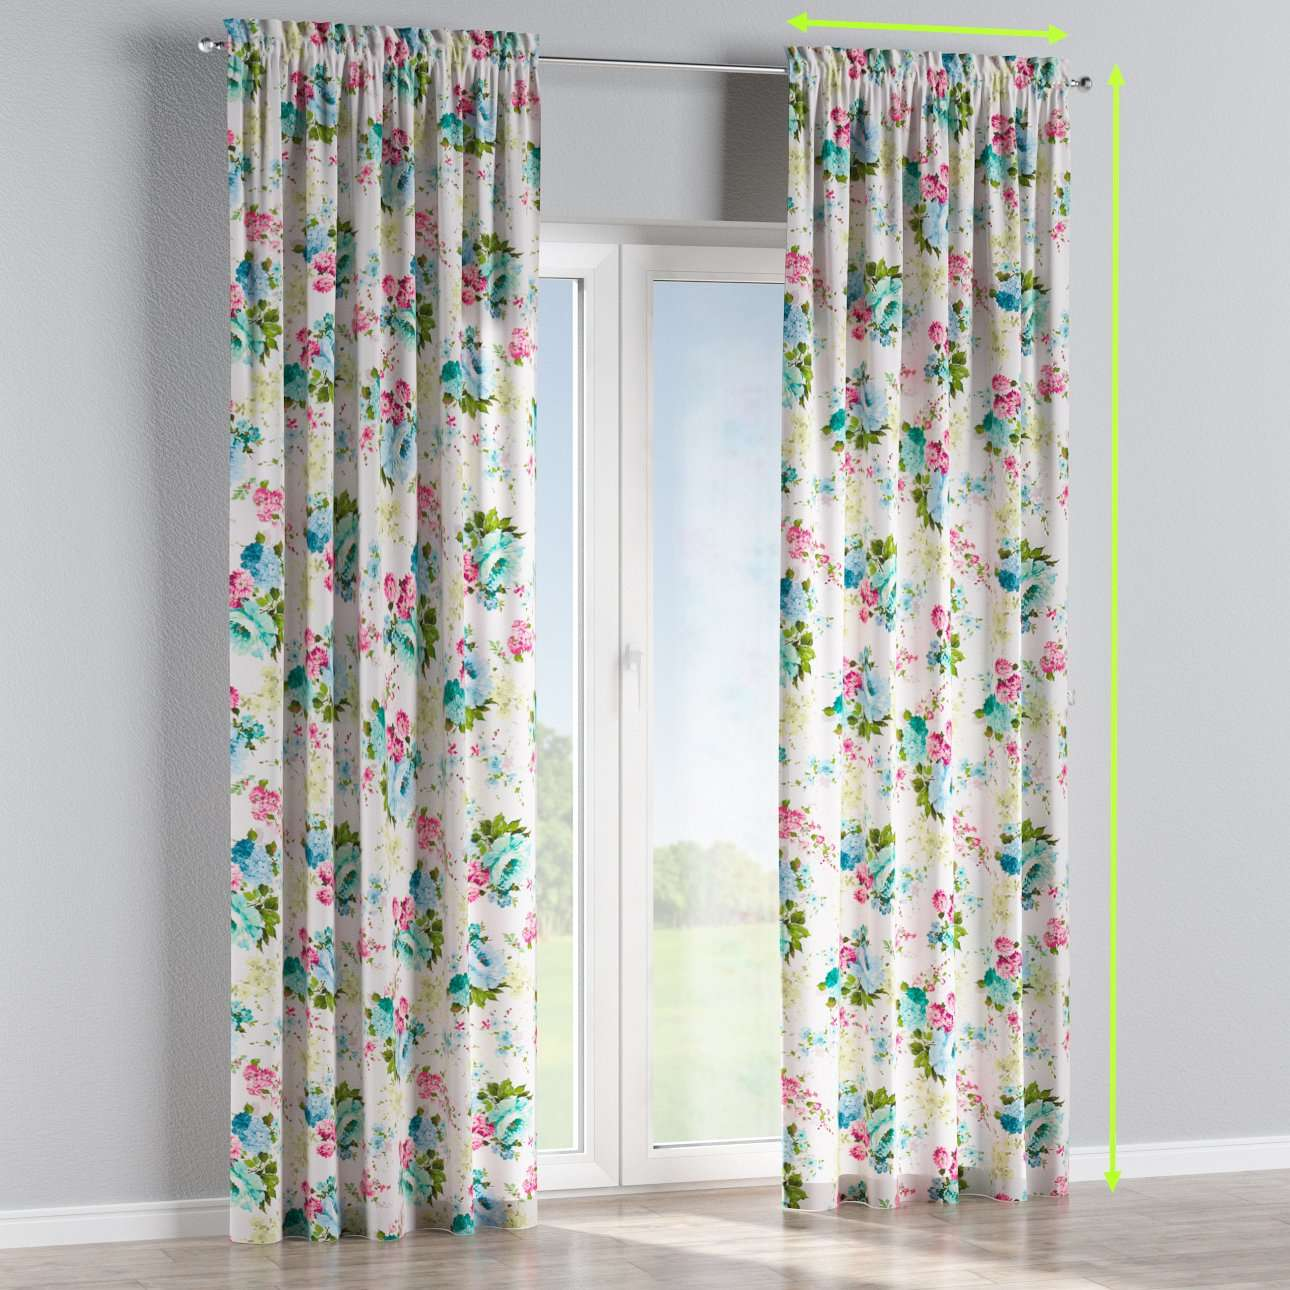 Slot and frill lined curtains in collection Monet, fabric: 140-02